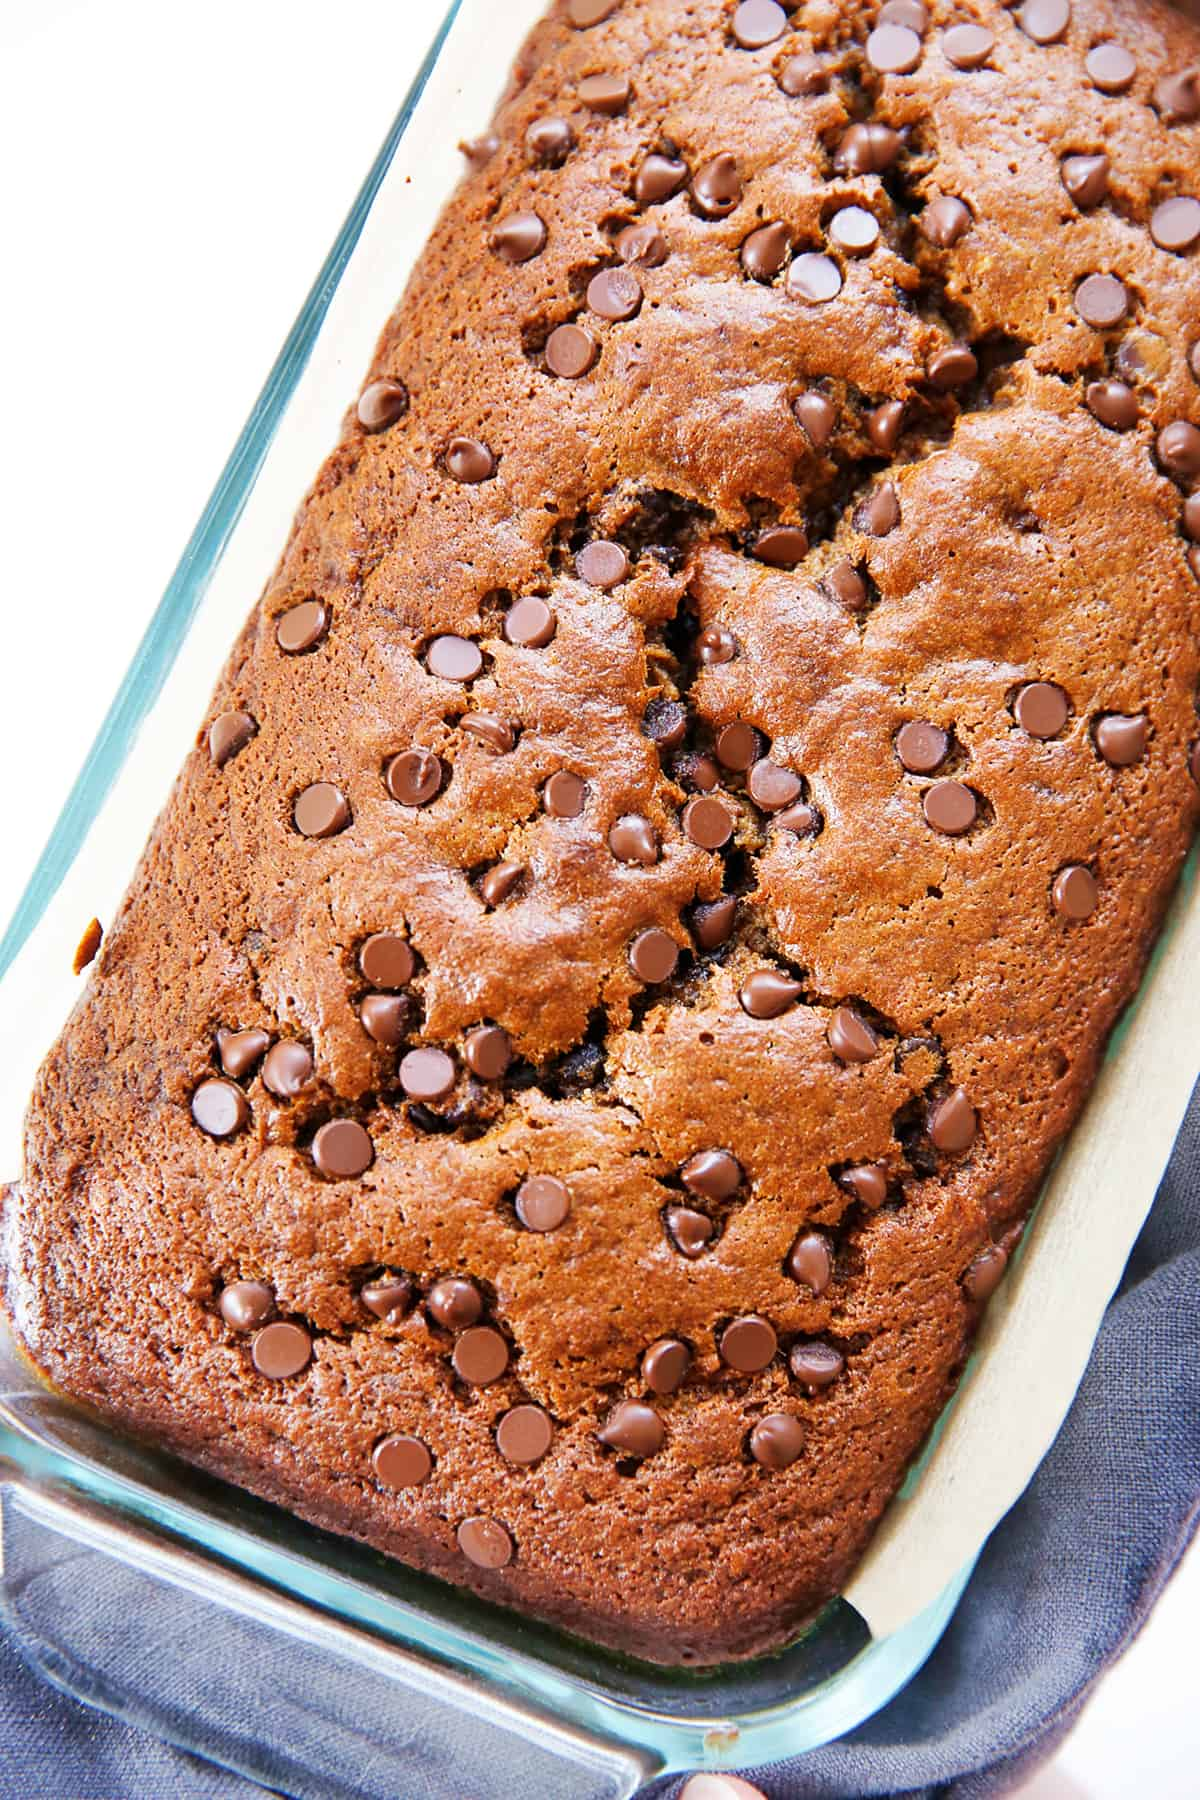 A loaf of gluten free banana bread with chocolate chips.